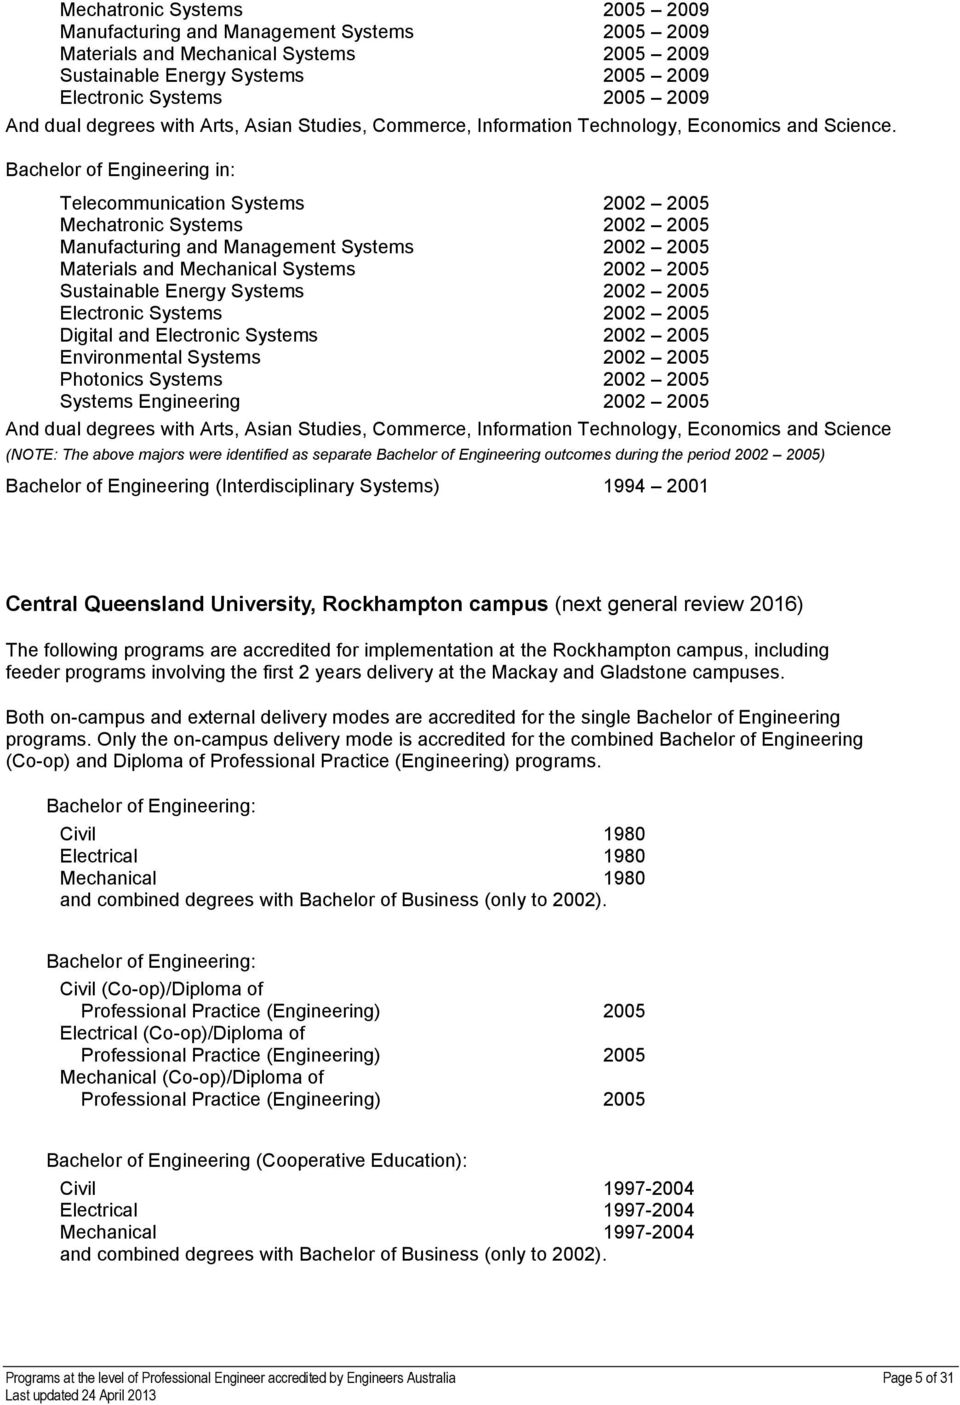 Telecommunication Systems 2002 2005 Mechatronic Systems 2002 2005 Manufacturing and Management Systems 2002 2005 Materials and Mechanical Systems 2002 2005 Sustainable Energy Systems 2002 2005